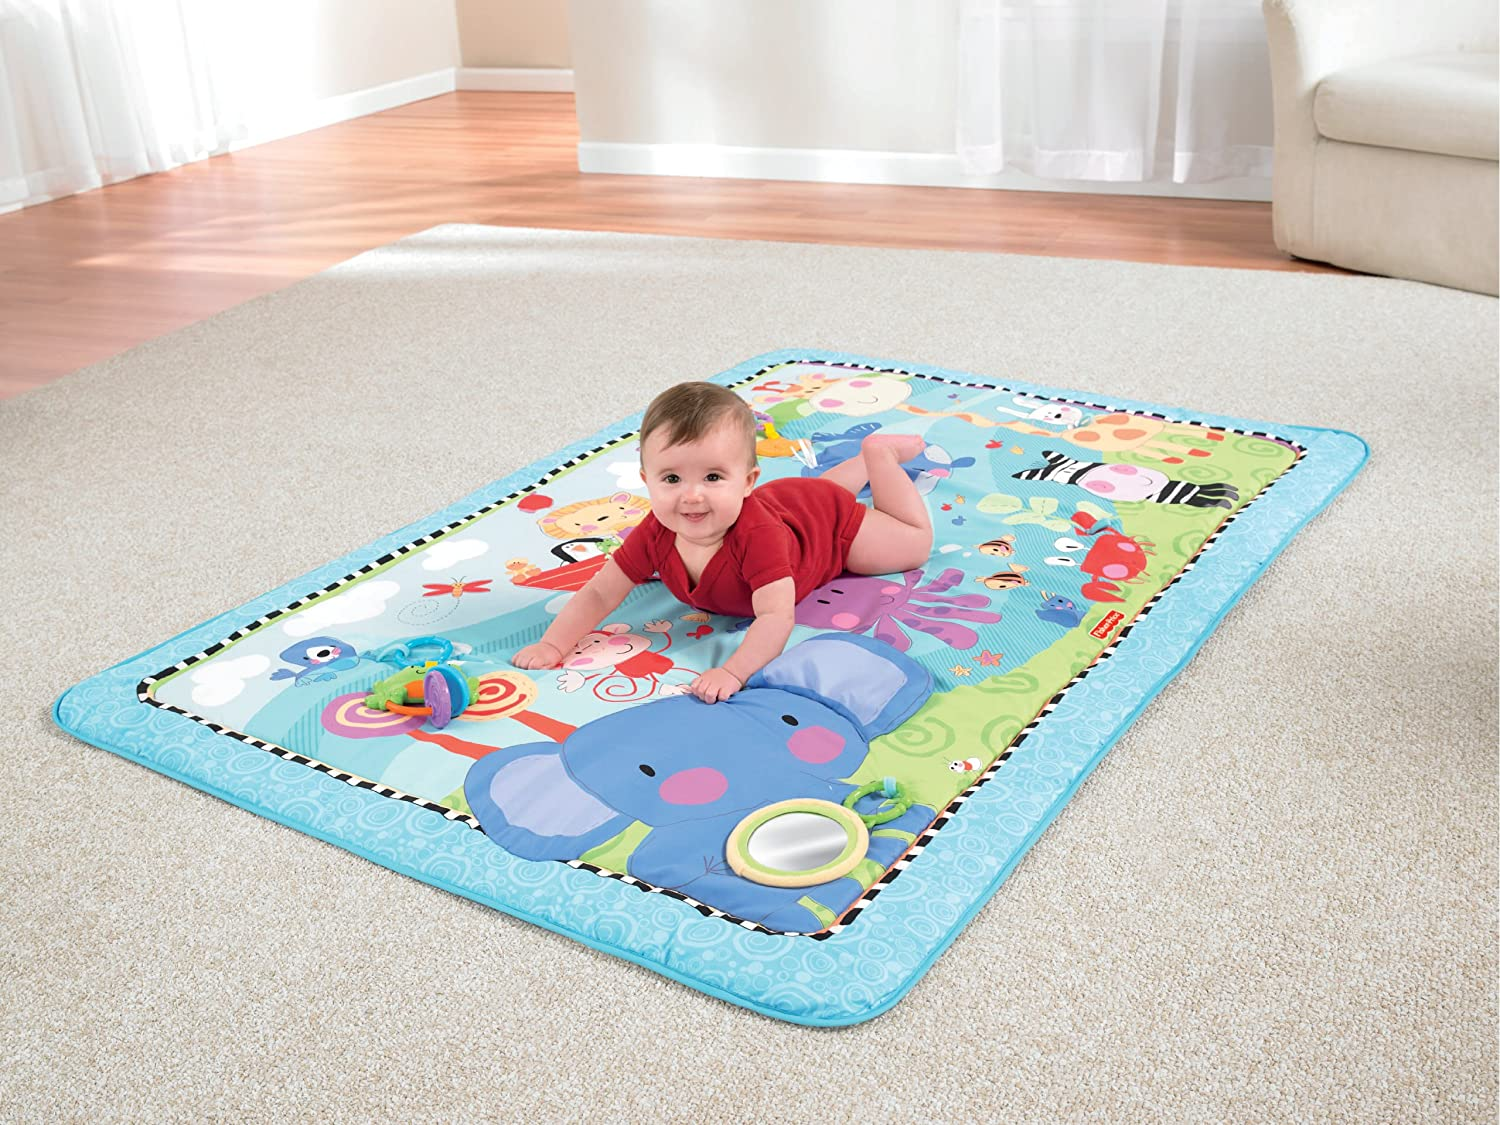 large play weegiggles extra product toxic foam infant mats non mat floor